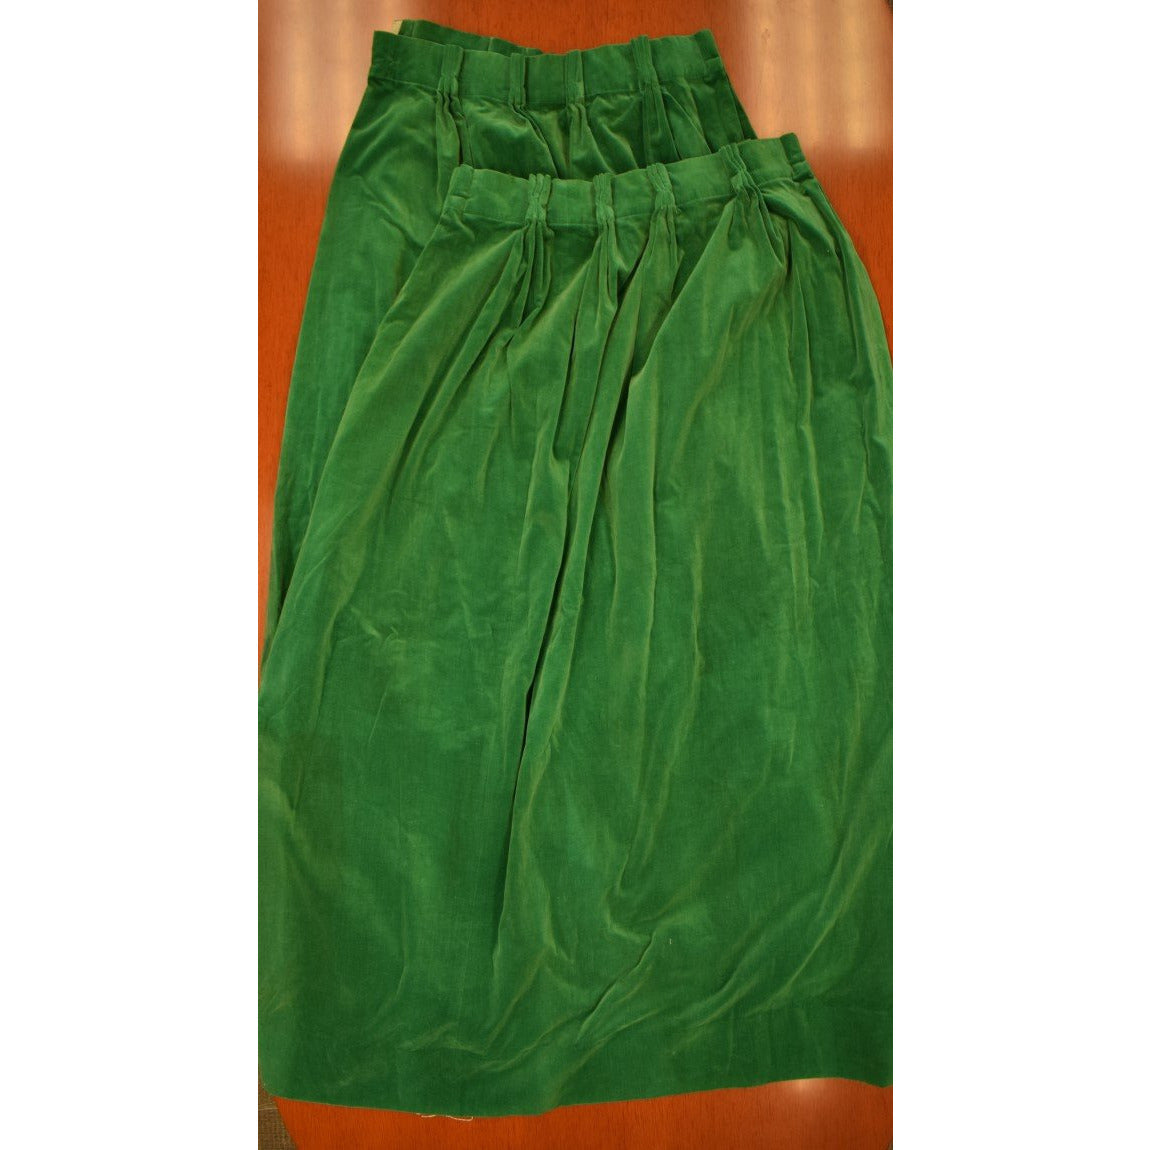 Pair of Billiard Green Felt Velvet Curtains w/ 11 Pinch Pleats